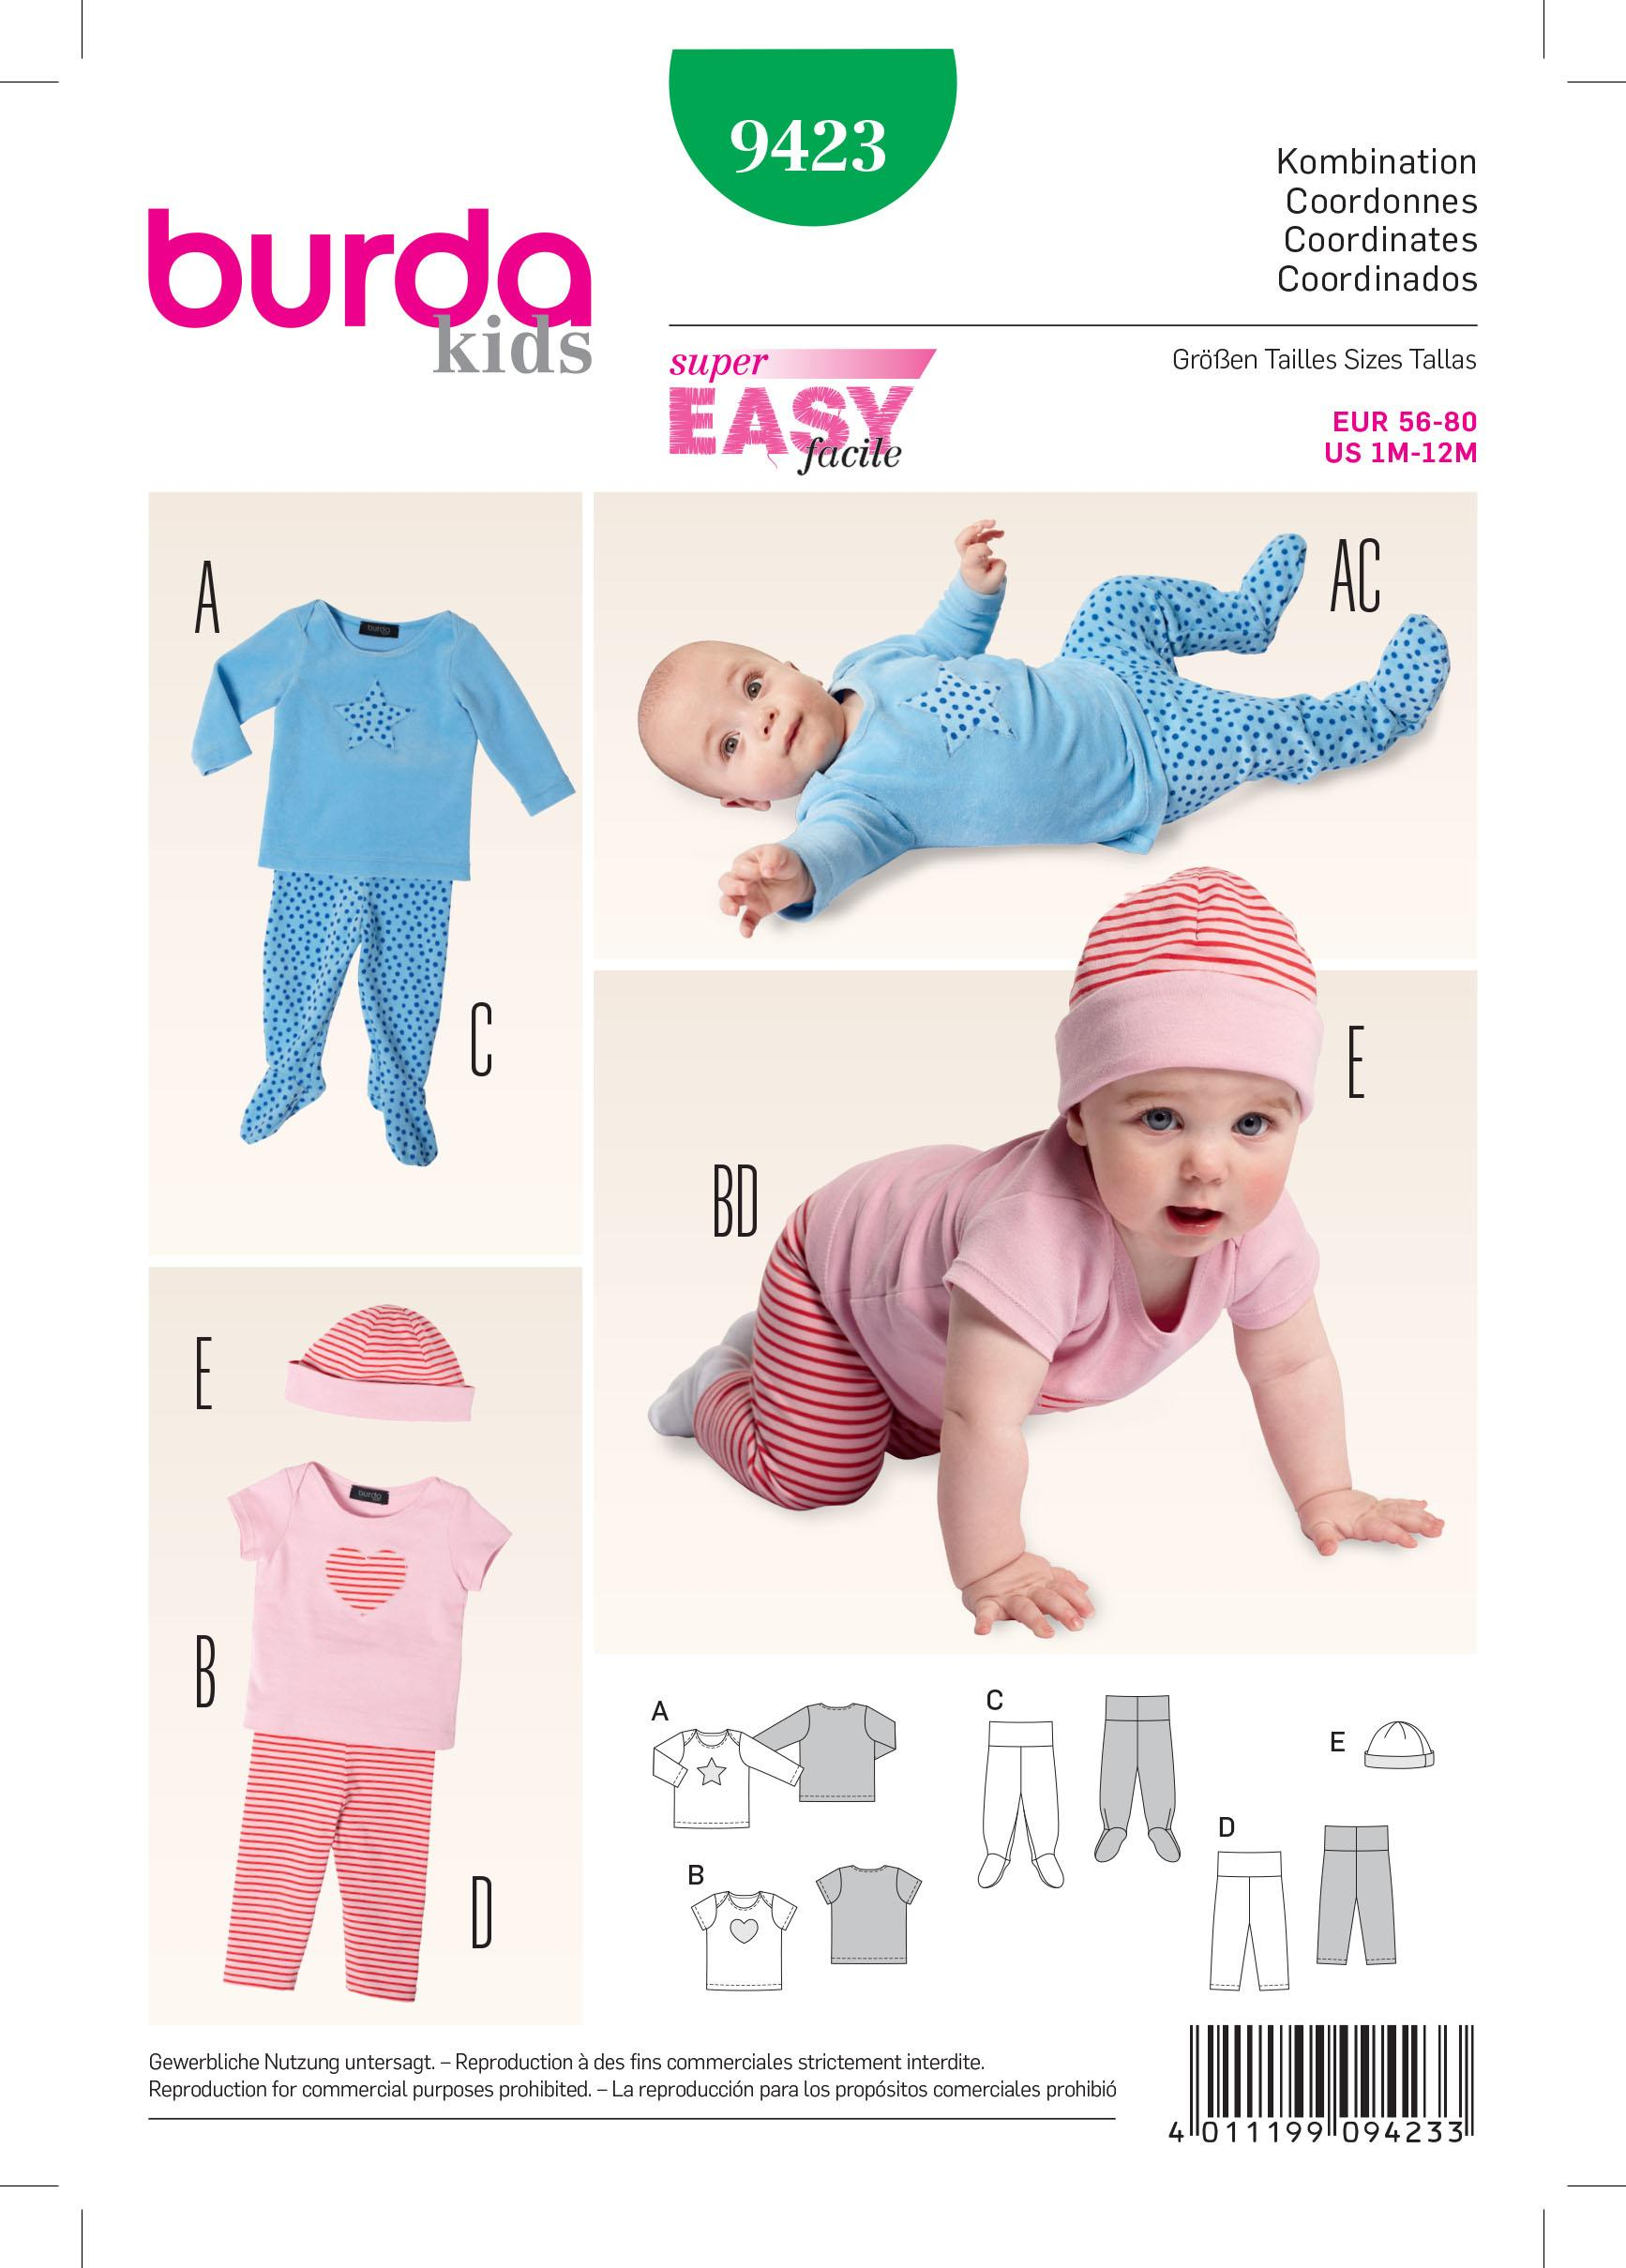 Burda B9423 Burda baby Sewing Pattern